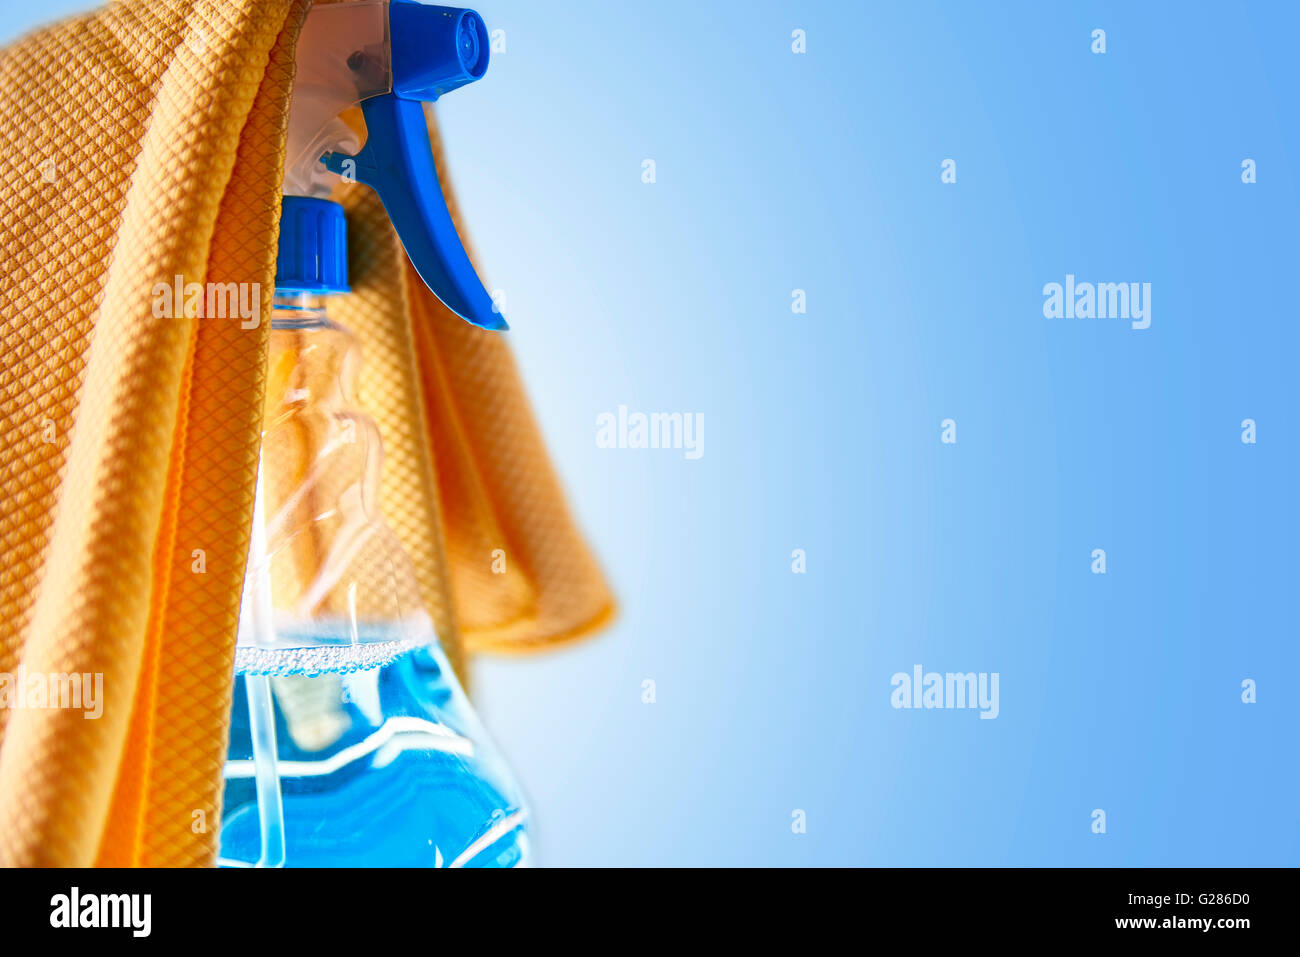 Glass cleaner spray bottle and yellow cloth with blue background. Cleaning concept.Horizontal composition. - Stock Image